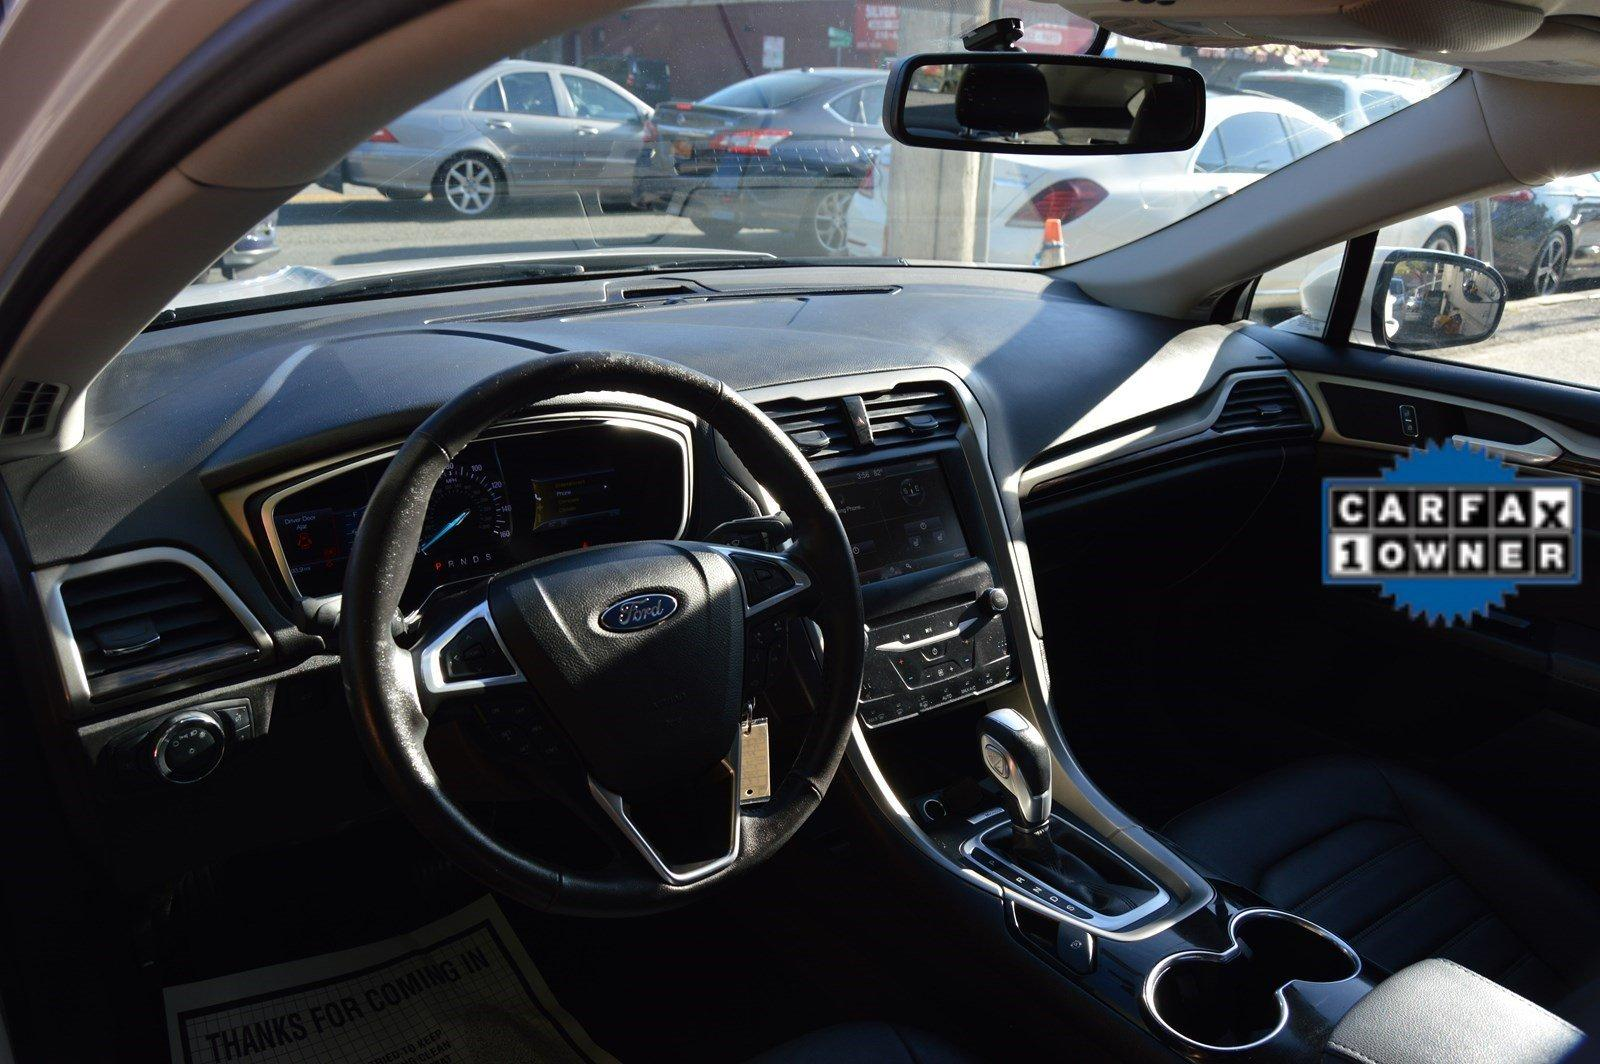 2014 Ford Fusion Se Stock 4563 For Sale Near Great Neck Ny Used